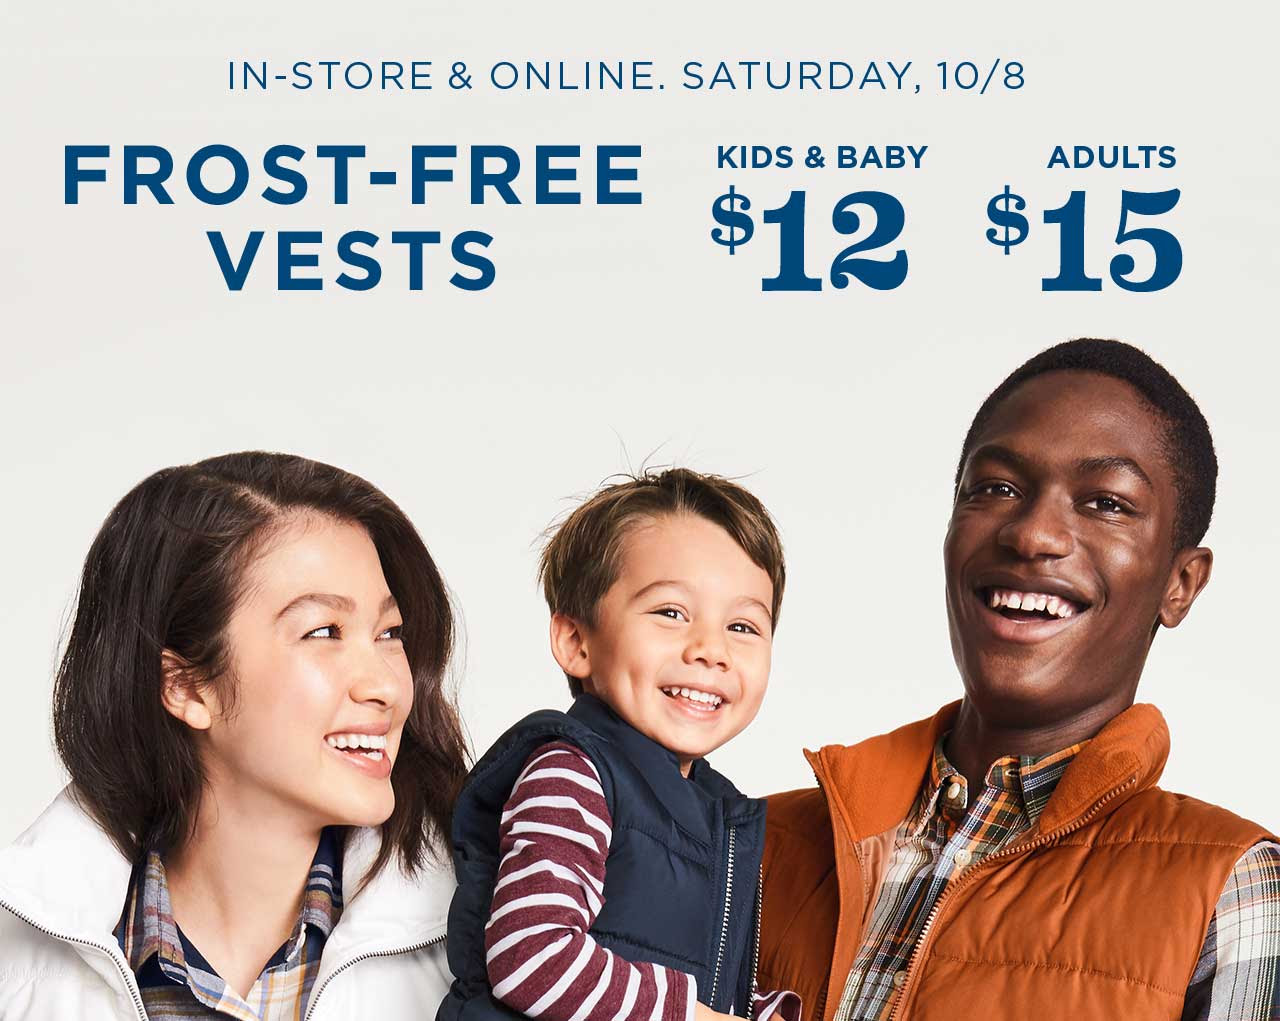 IN-STORE & ONLINE. SATURDAY, 10/8 | FROST-FREE VESTS | KIDS & BABY $12 | ADULTS $15